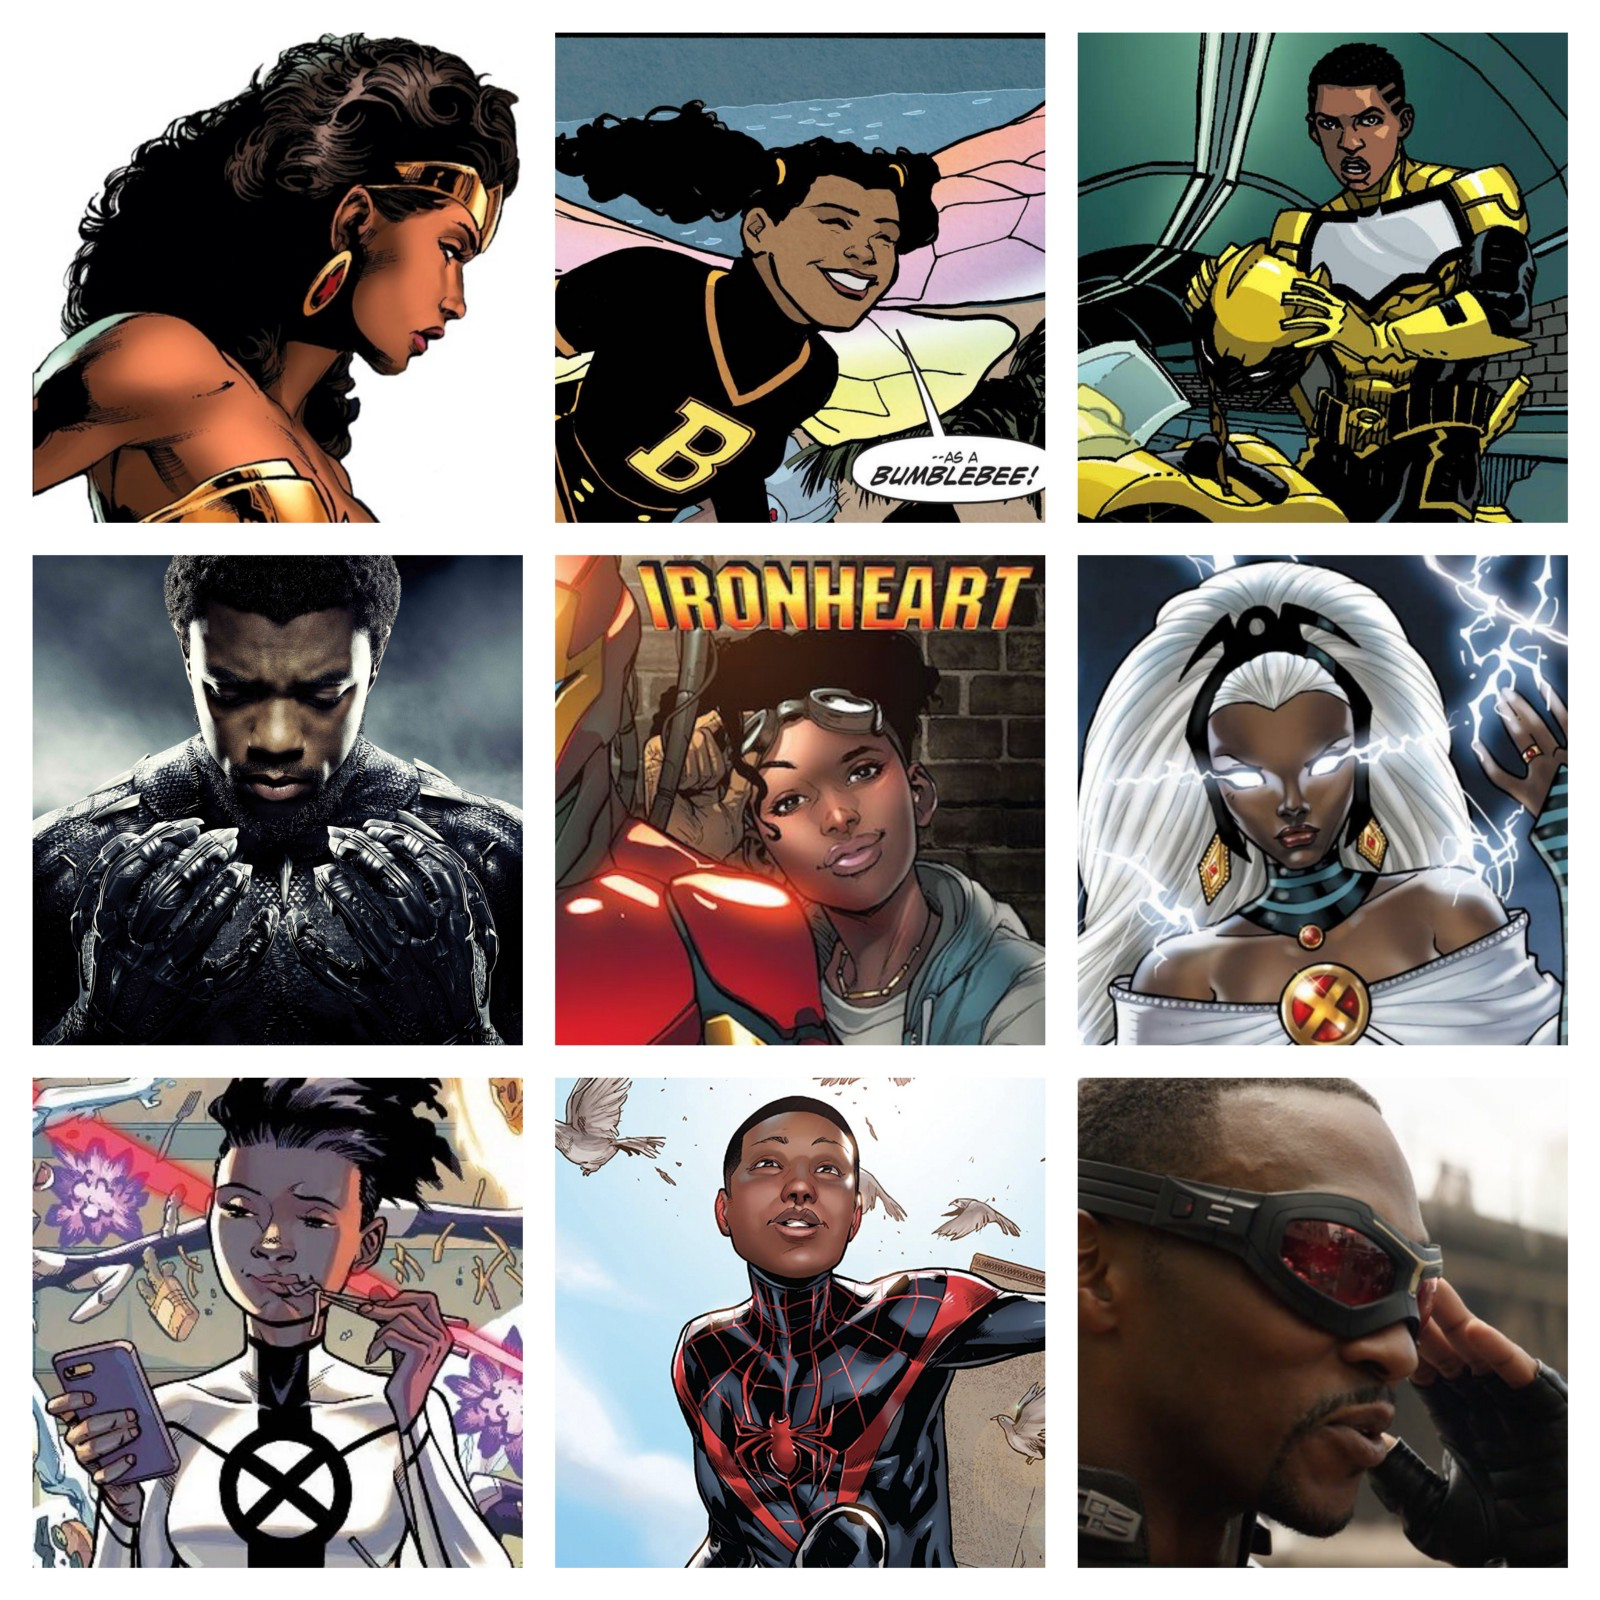 A compilation of Black Comic Book Characters